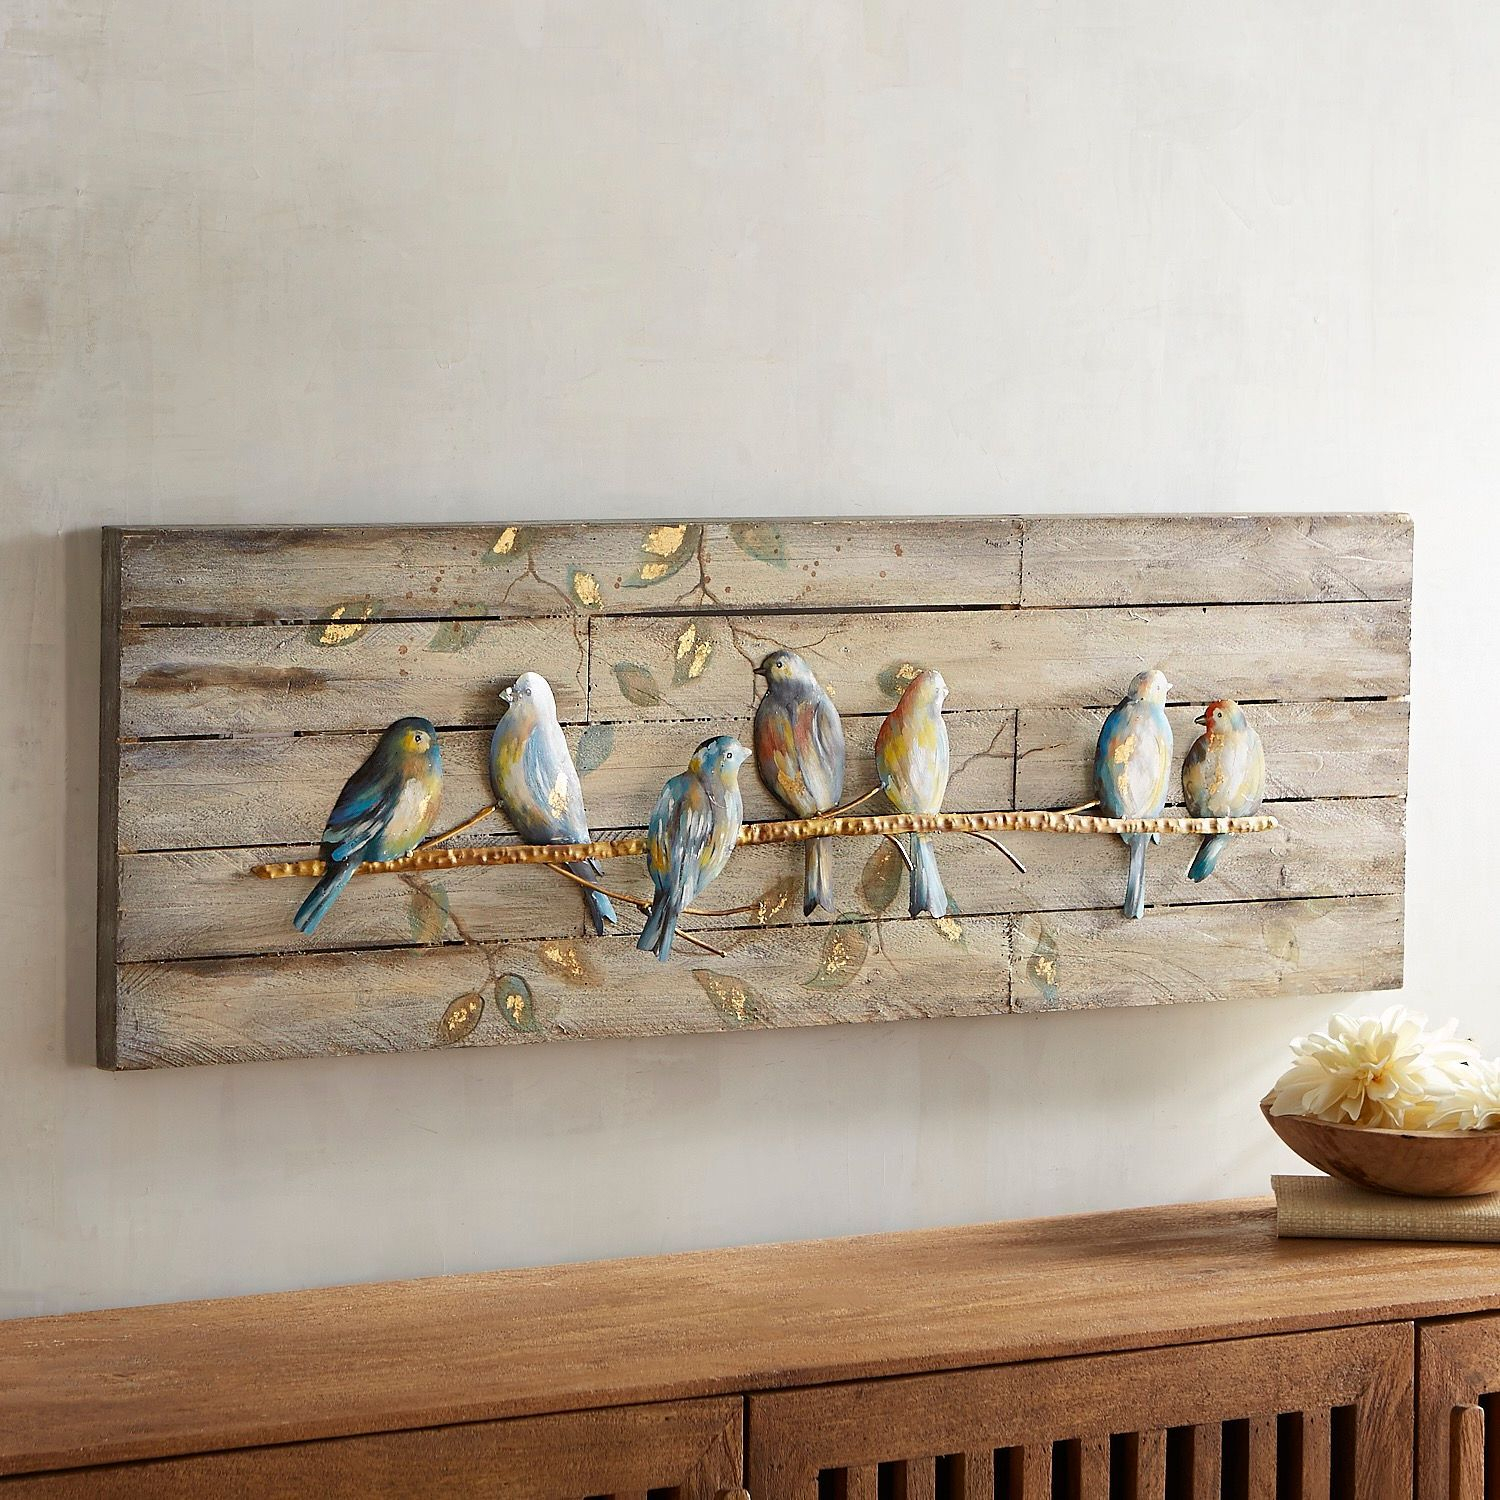 Birds On A Branch Wall Decor In 2019 | Arts And Crafts | Diy For Birds On A Branch Wall Decor (View 22 of 30)